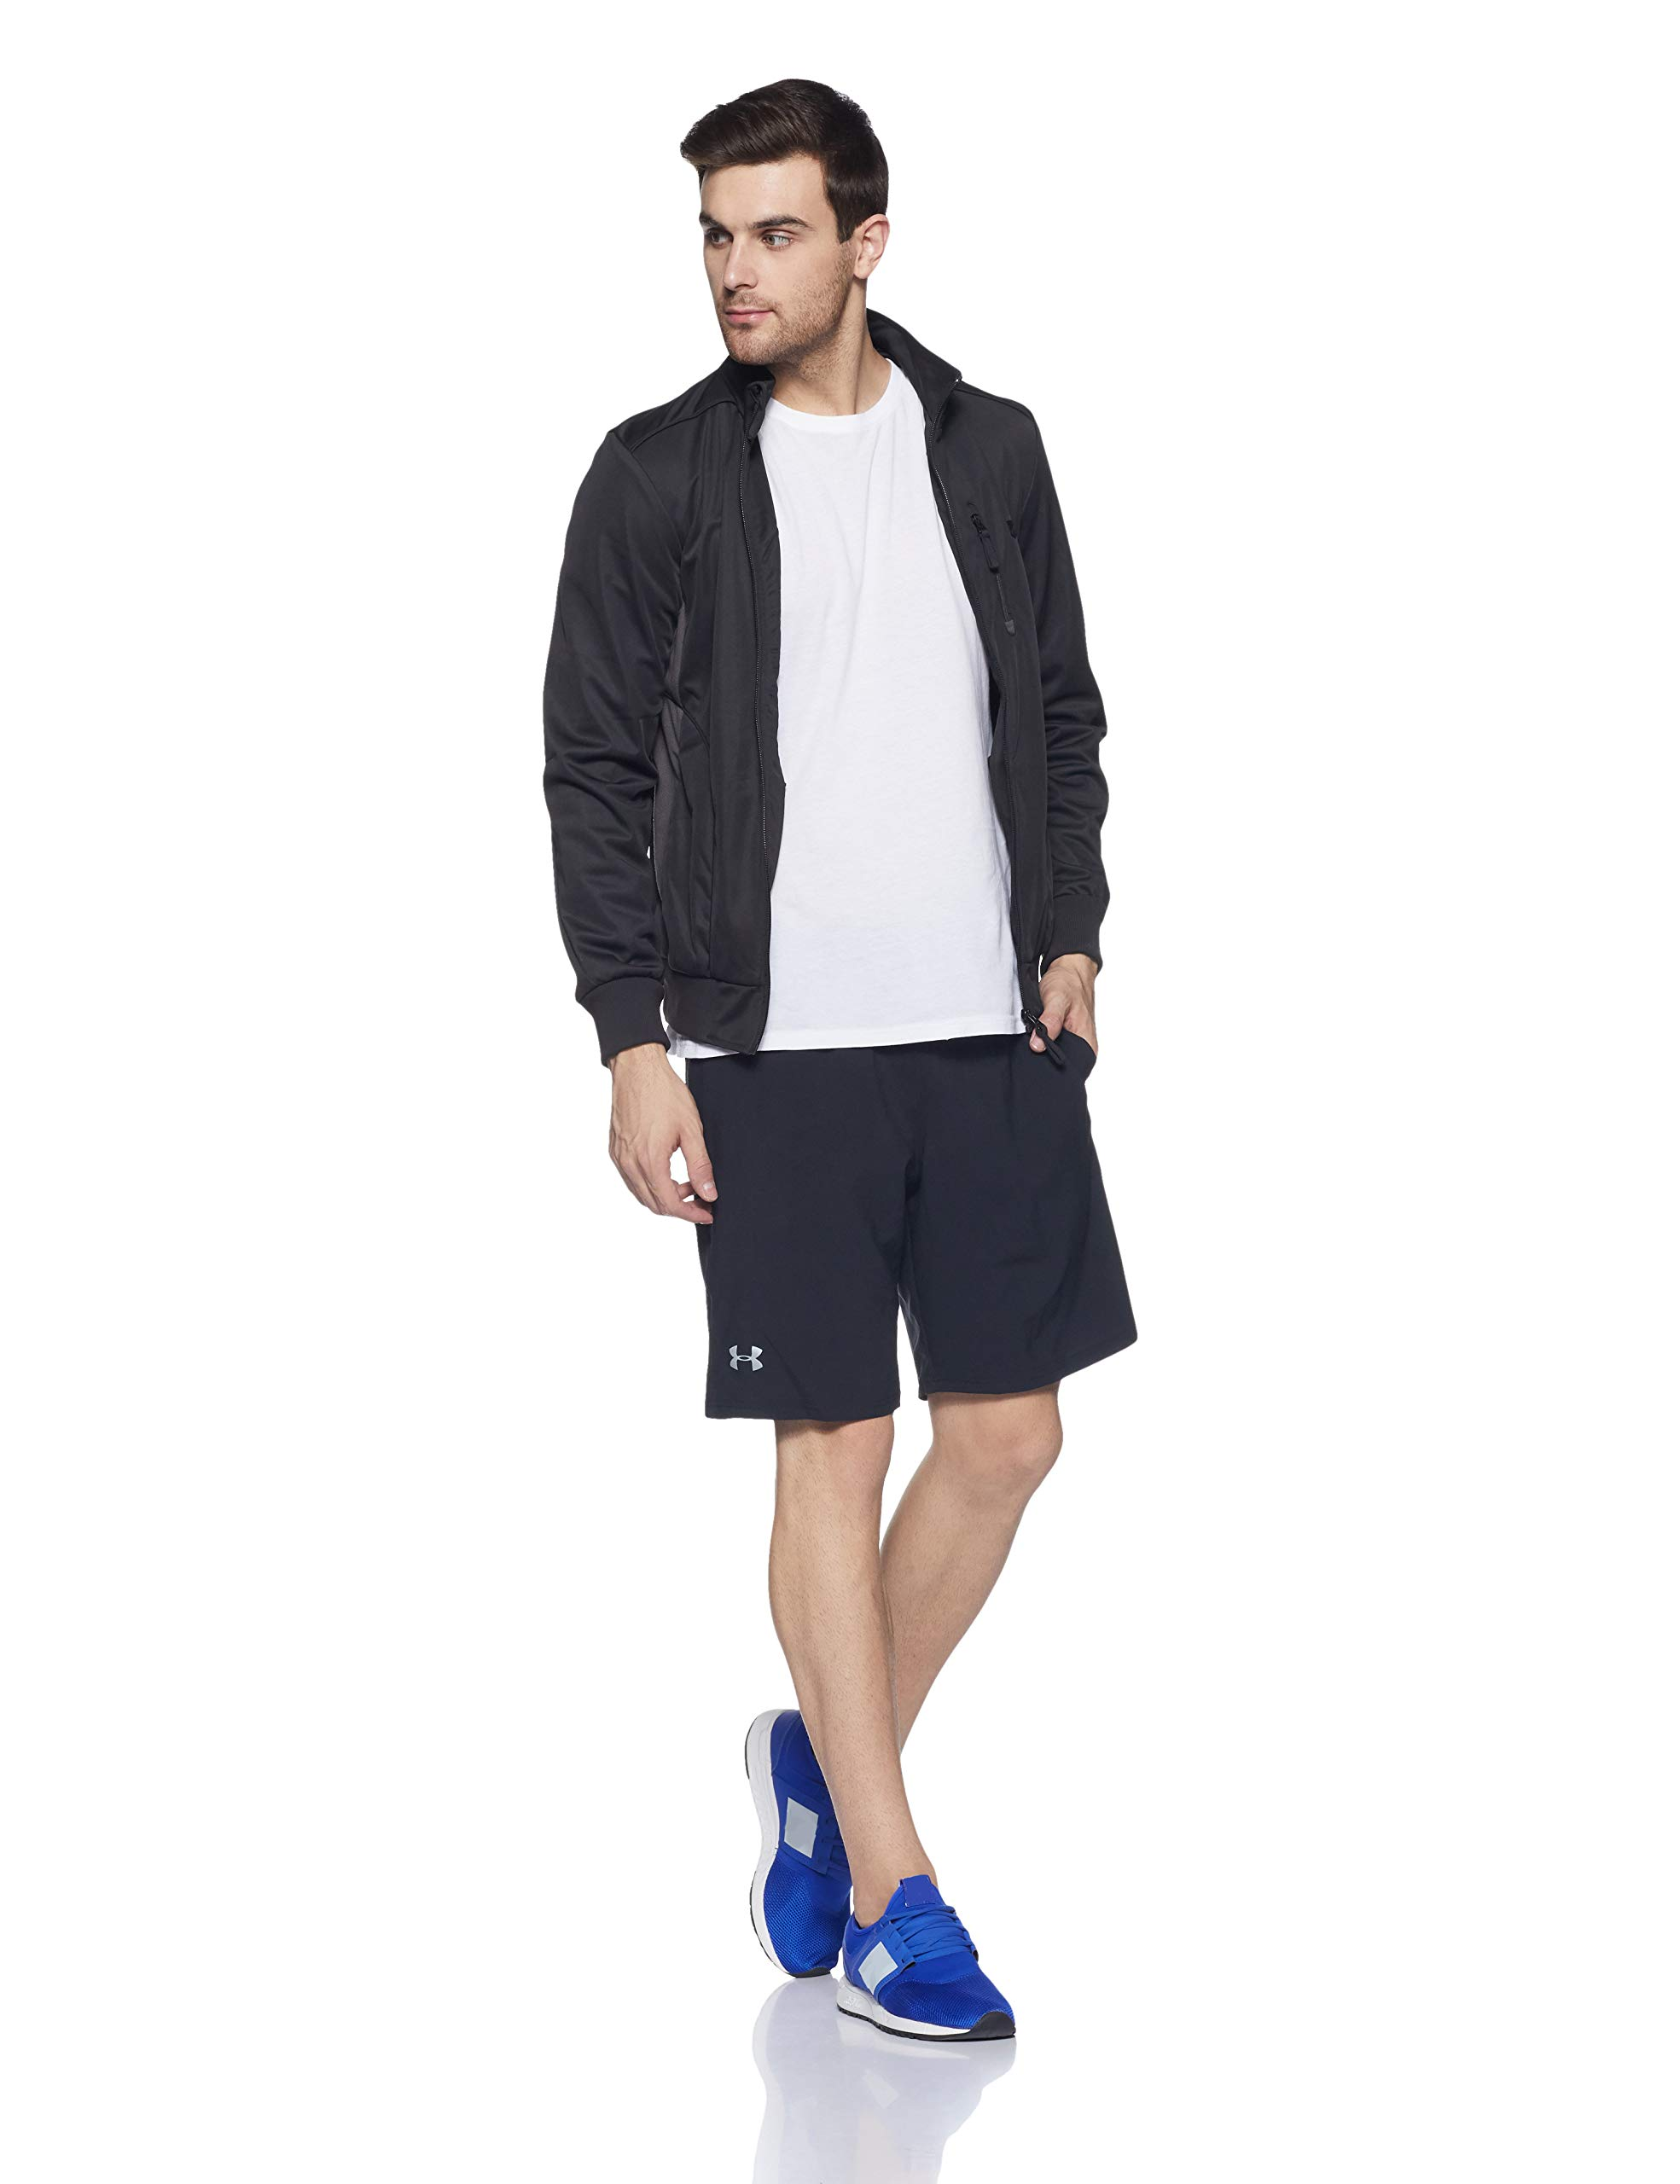 Under Armour Men's Launch 9'' Shorts, Black/Reflective, X-Small by Under Armour (Image #5)